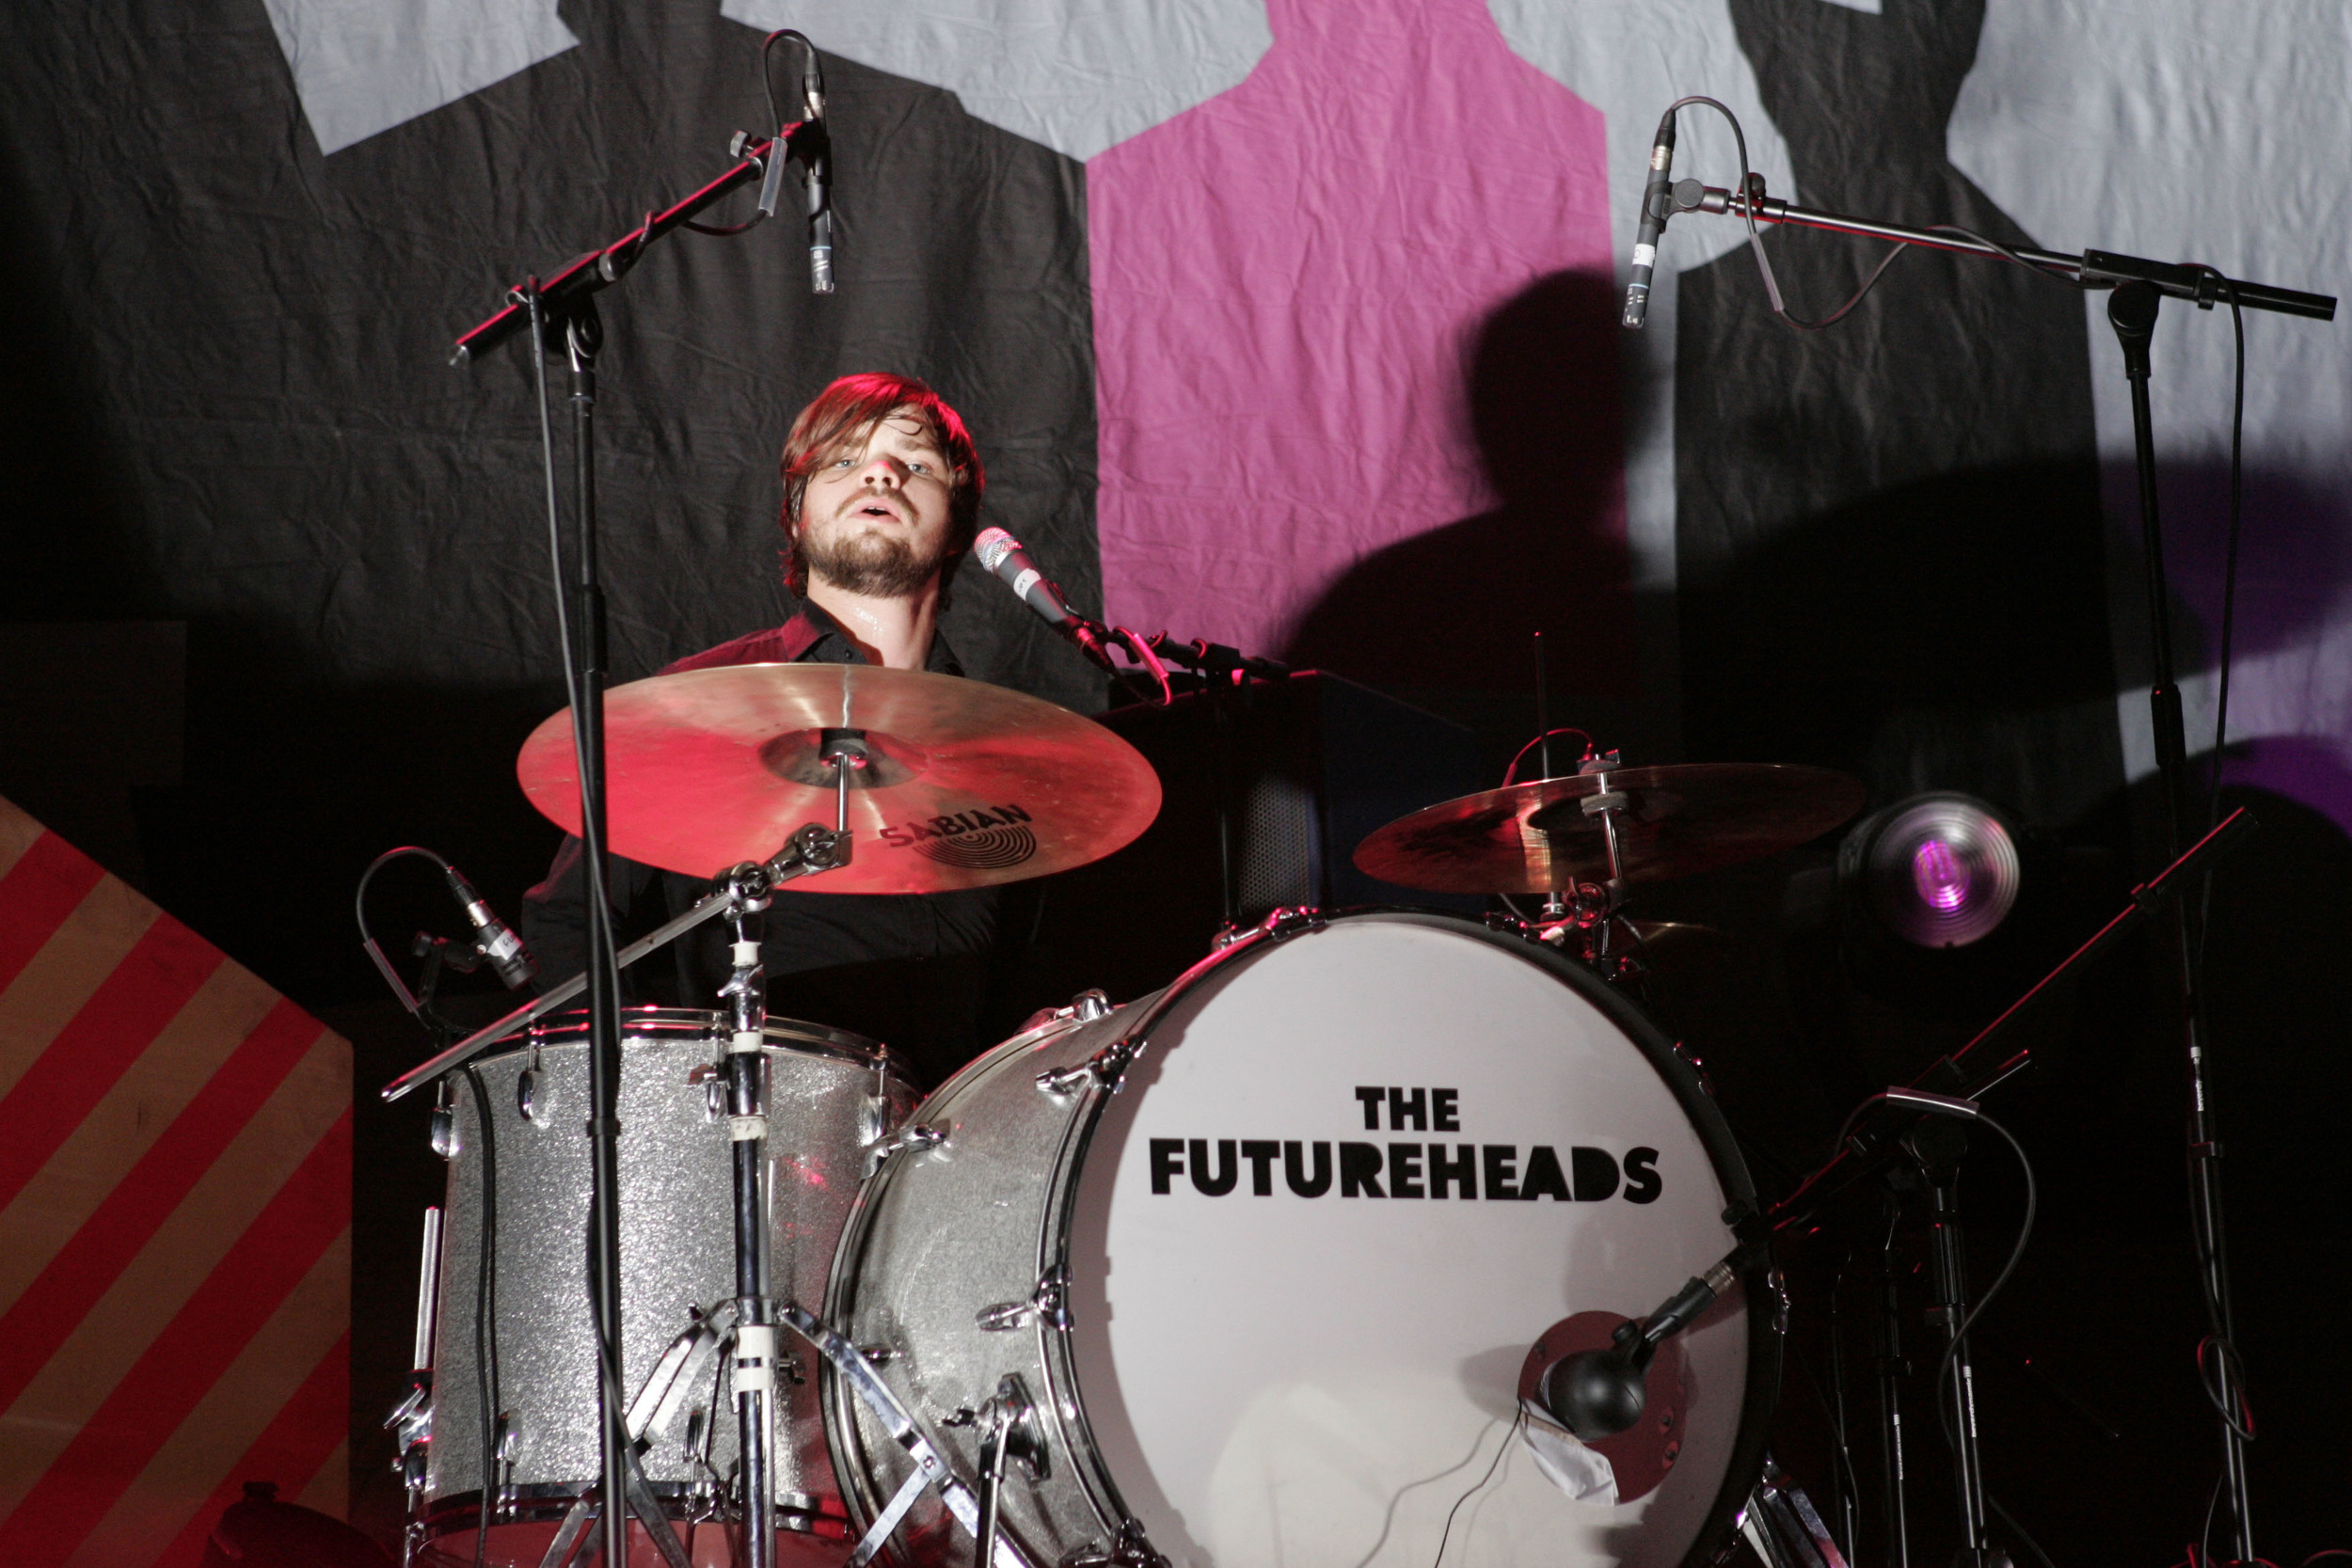 TheFutureheads_Newcastle_20053.jpg